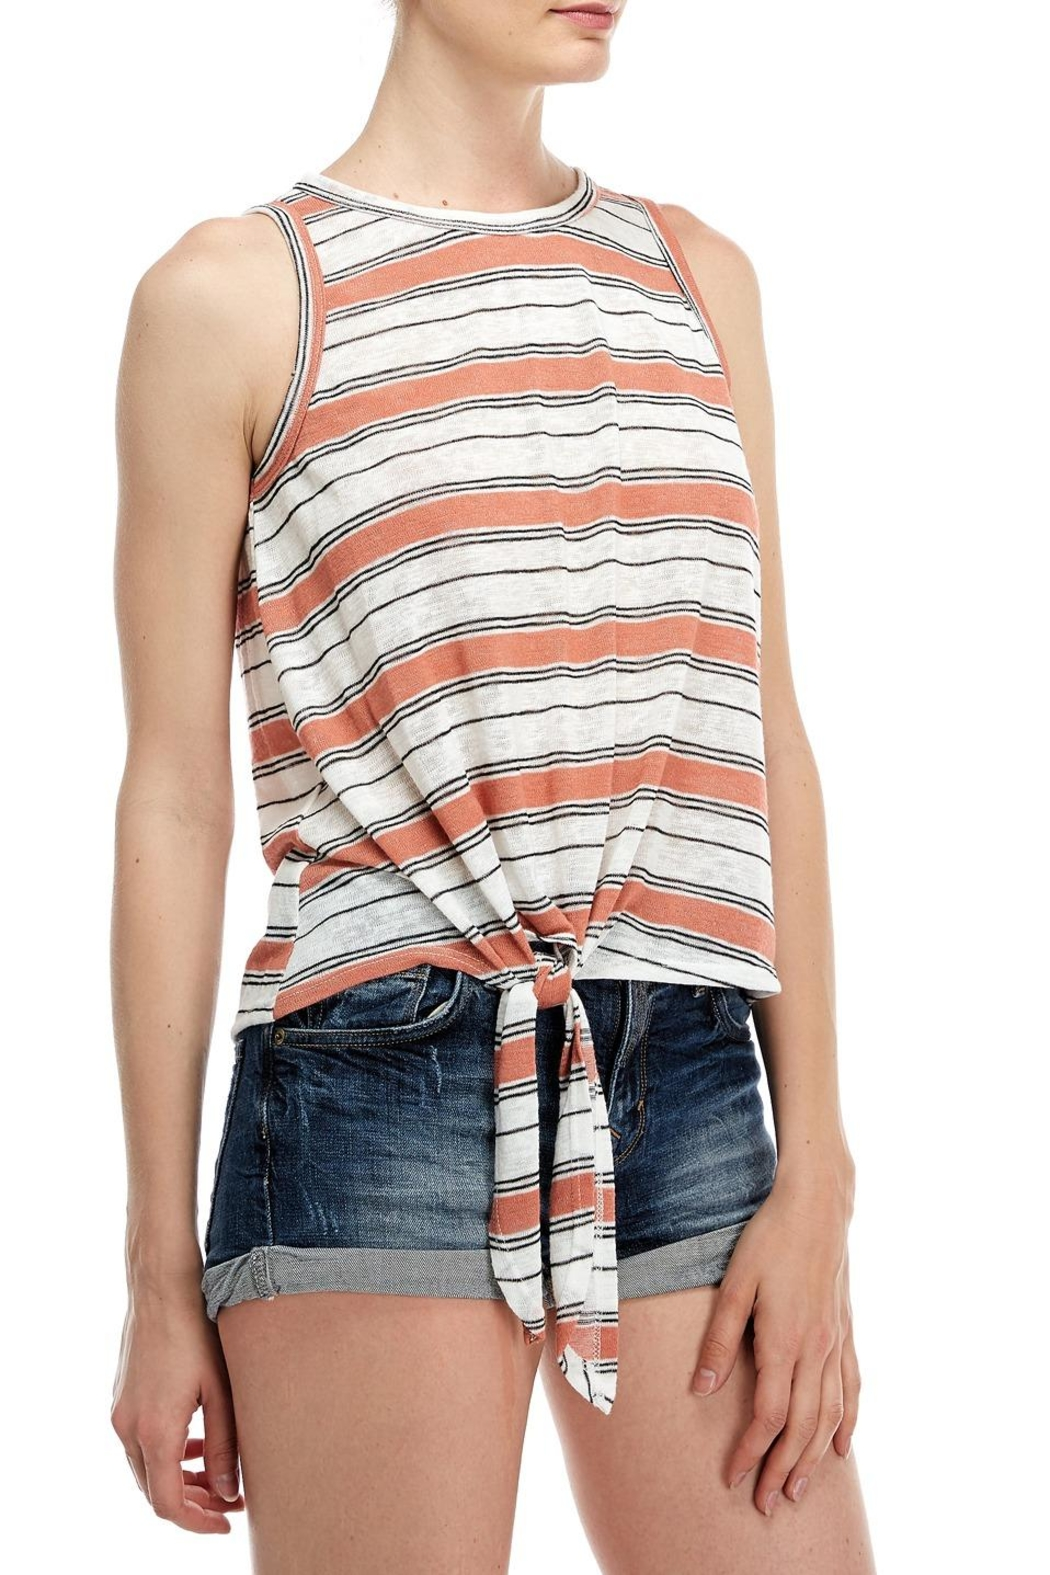 All In Favor Stripe Tank Top - Front Full Image